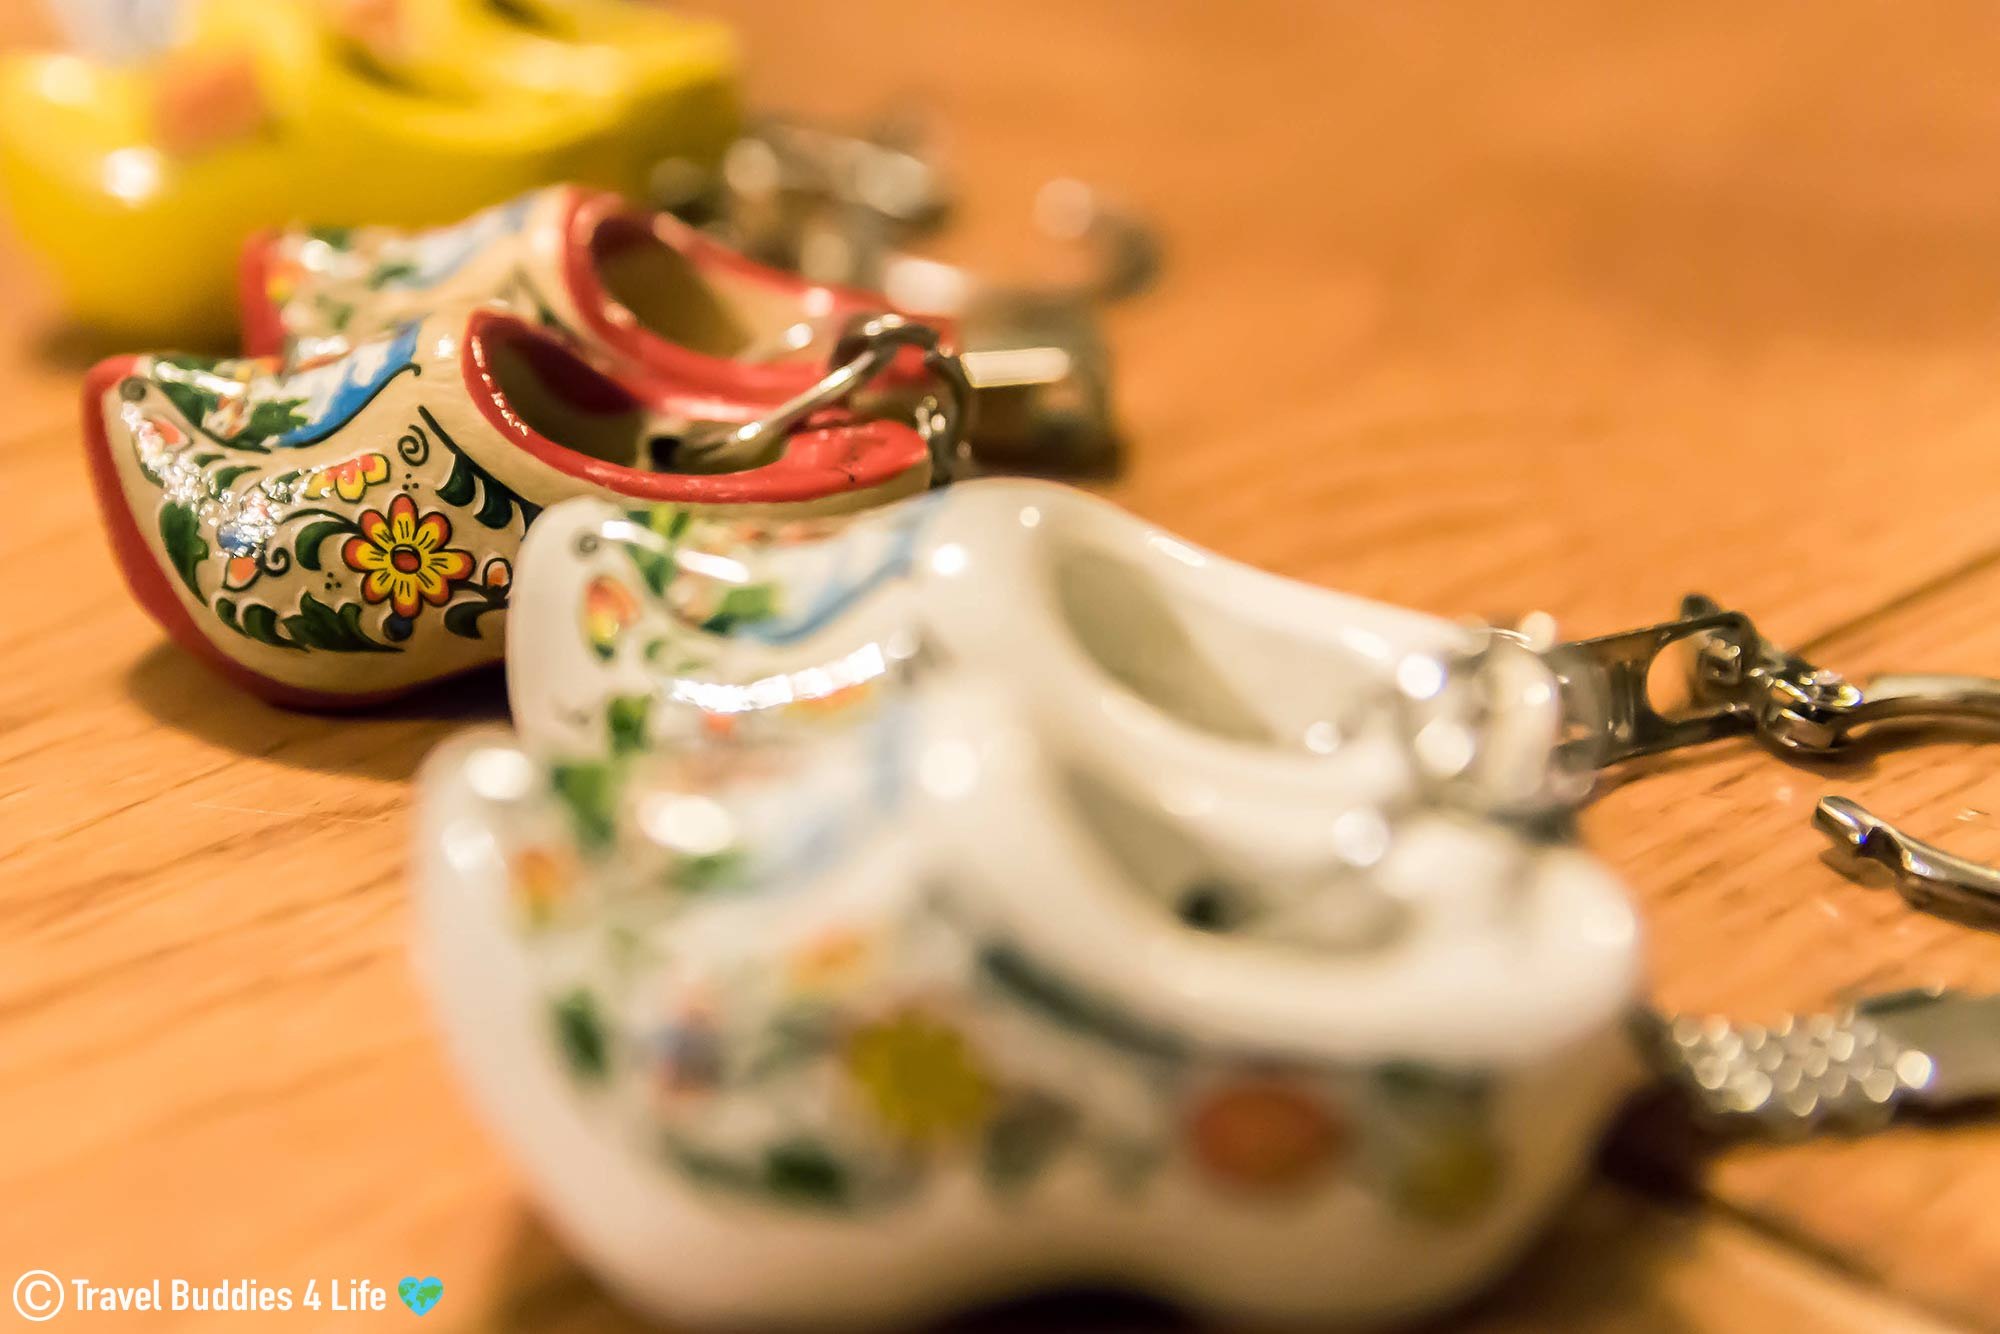 A Series Of Clog Key Chains Decorated From The Netherlands, Europe